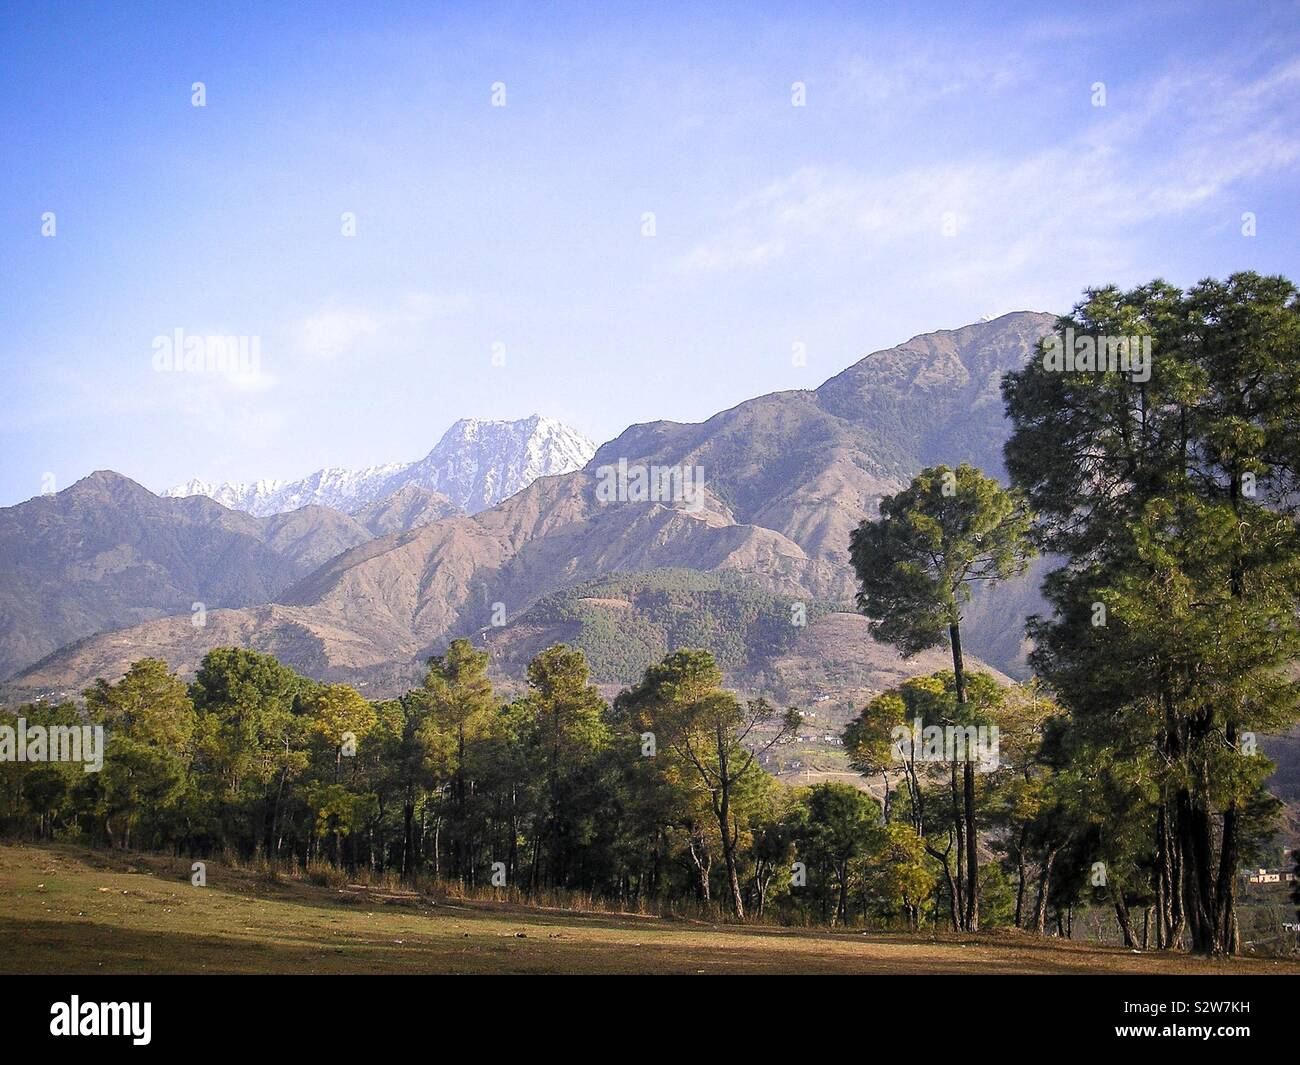 Scenic landscape beside a country road in the Dauladhar mountains of the Himalayan foothills, near Dharamsala, Himachal Pradesh, north India Stock Photo